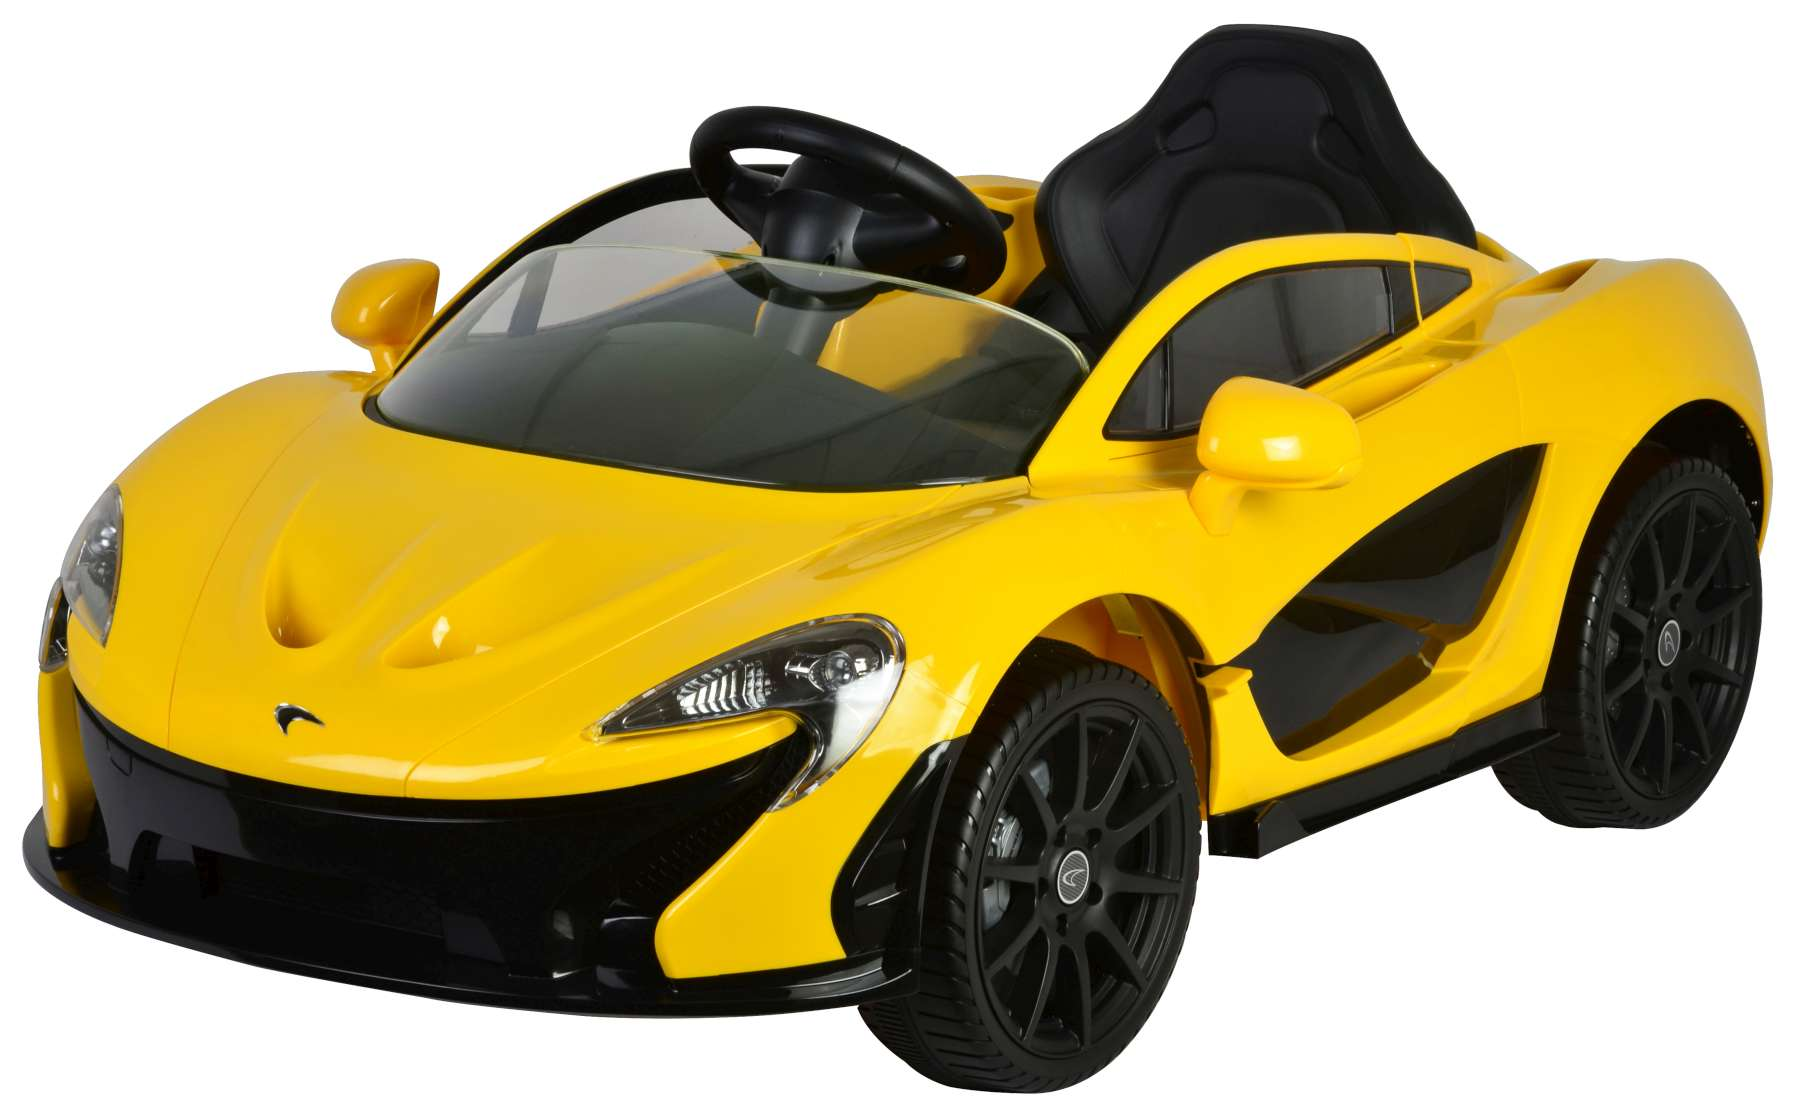 Mclaren P1 Yellow Electric Car With Remote Control 12 Volt